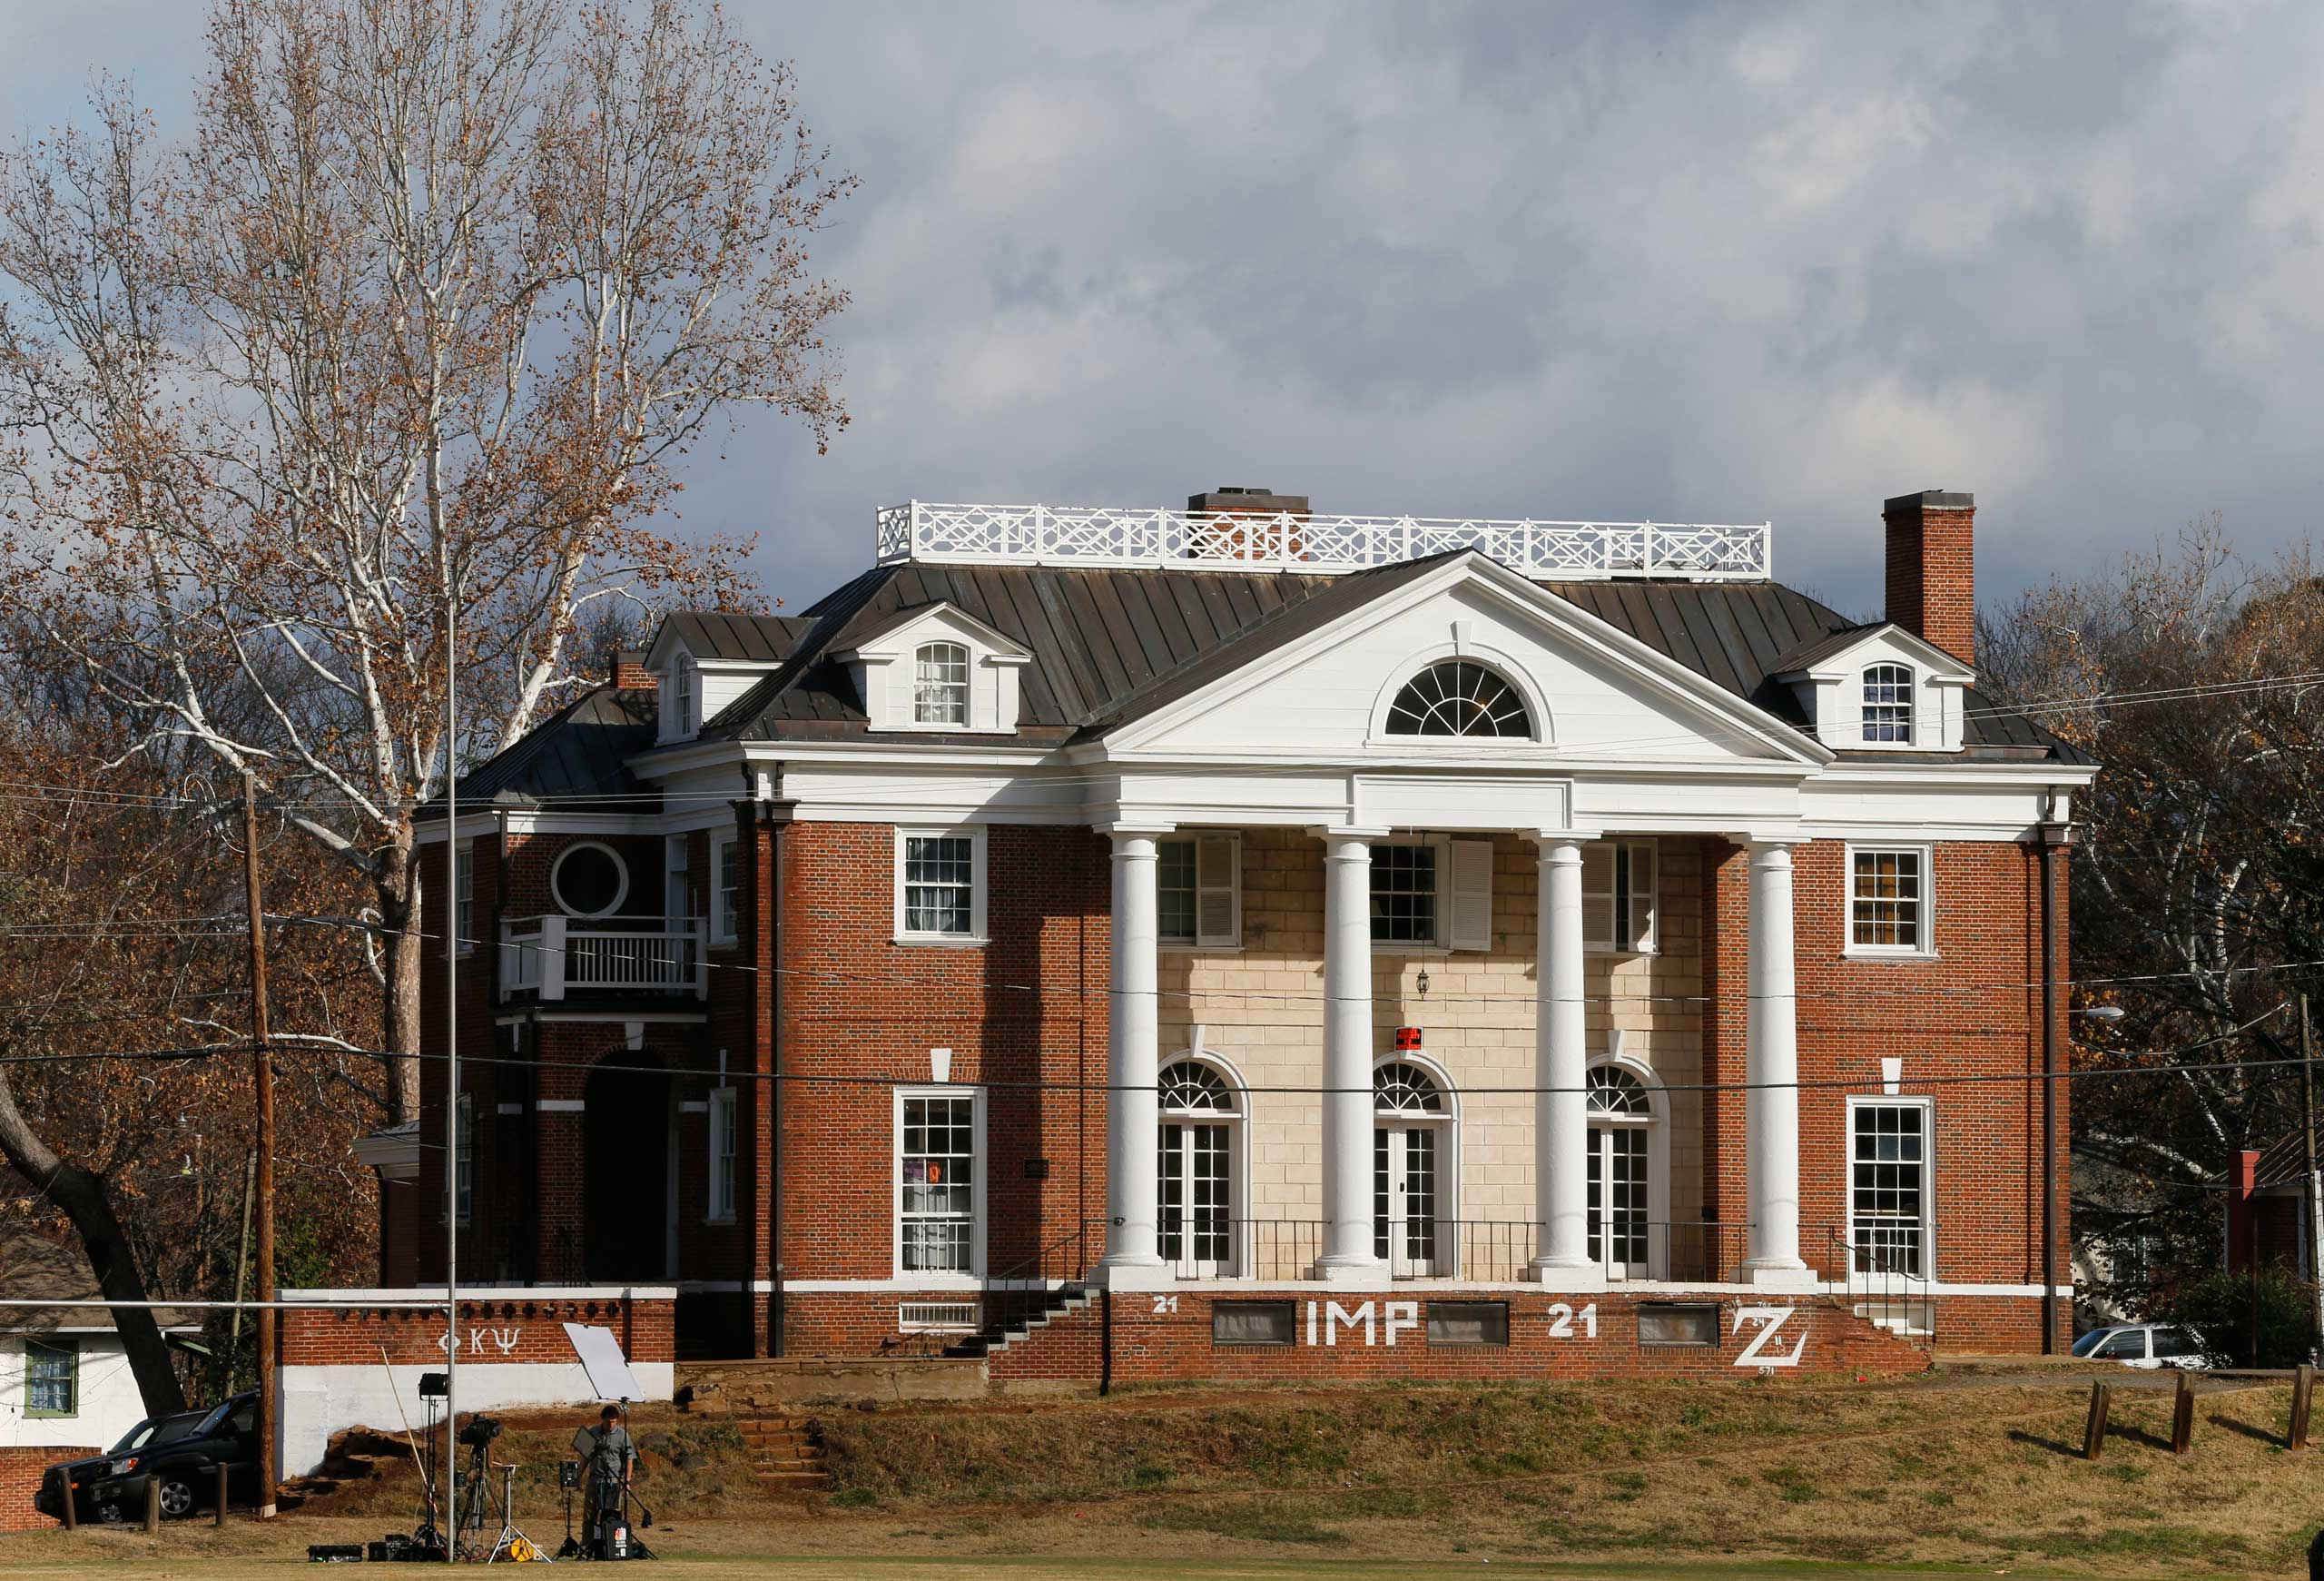 The Phi Kappa Psi fraternity house at the University of Virginia in Charlottesville, Va., on Nov. 24, 2014. A Rolling Stone article alleged a gang rape at the hous